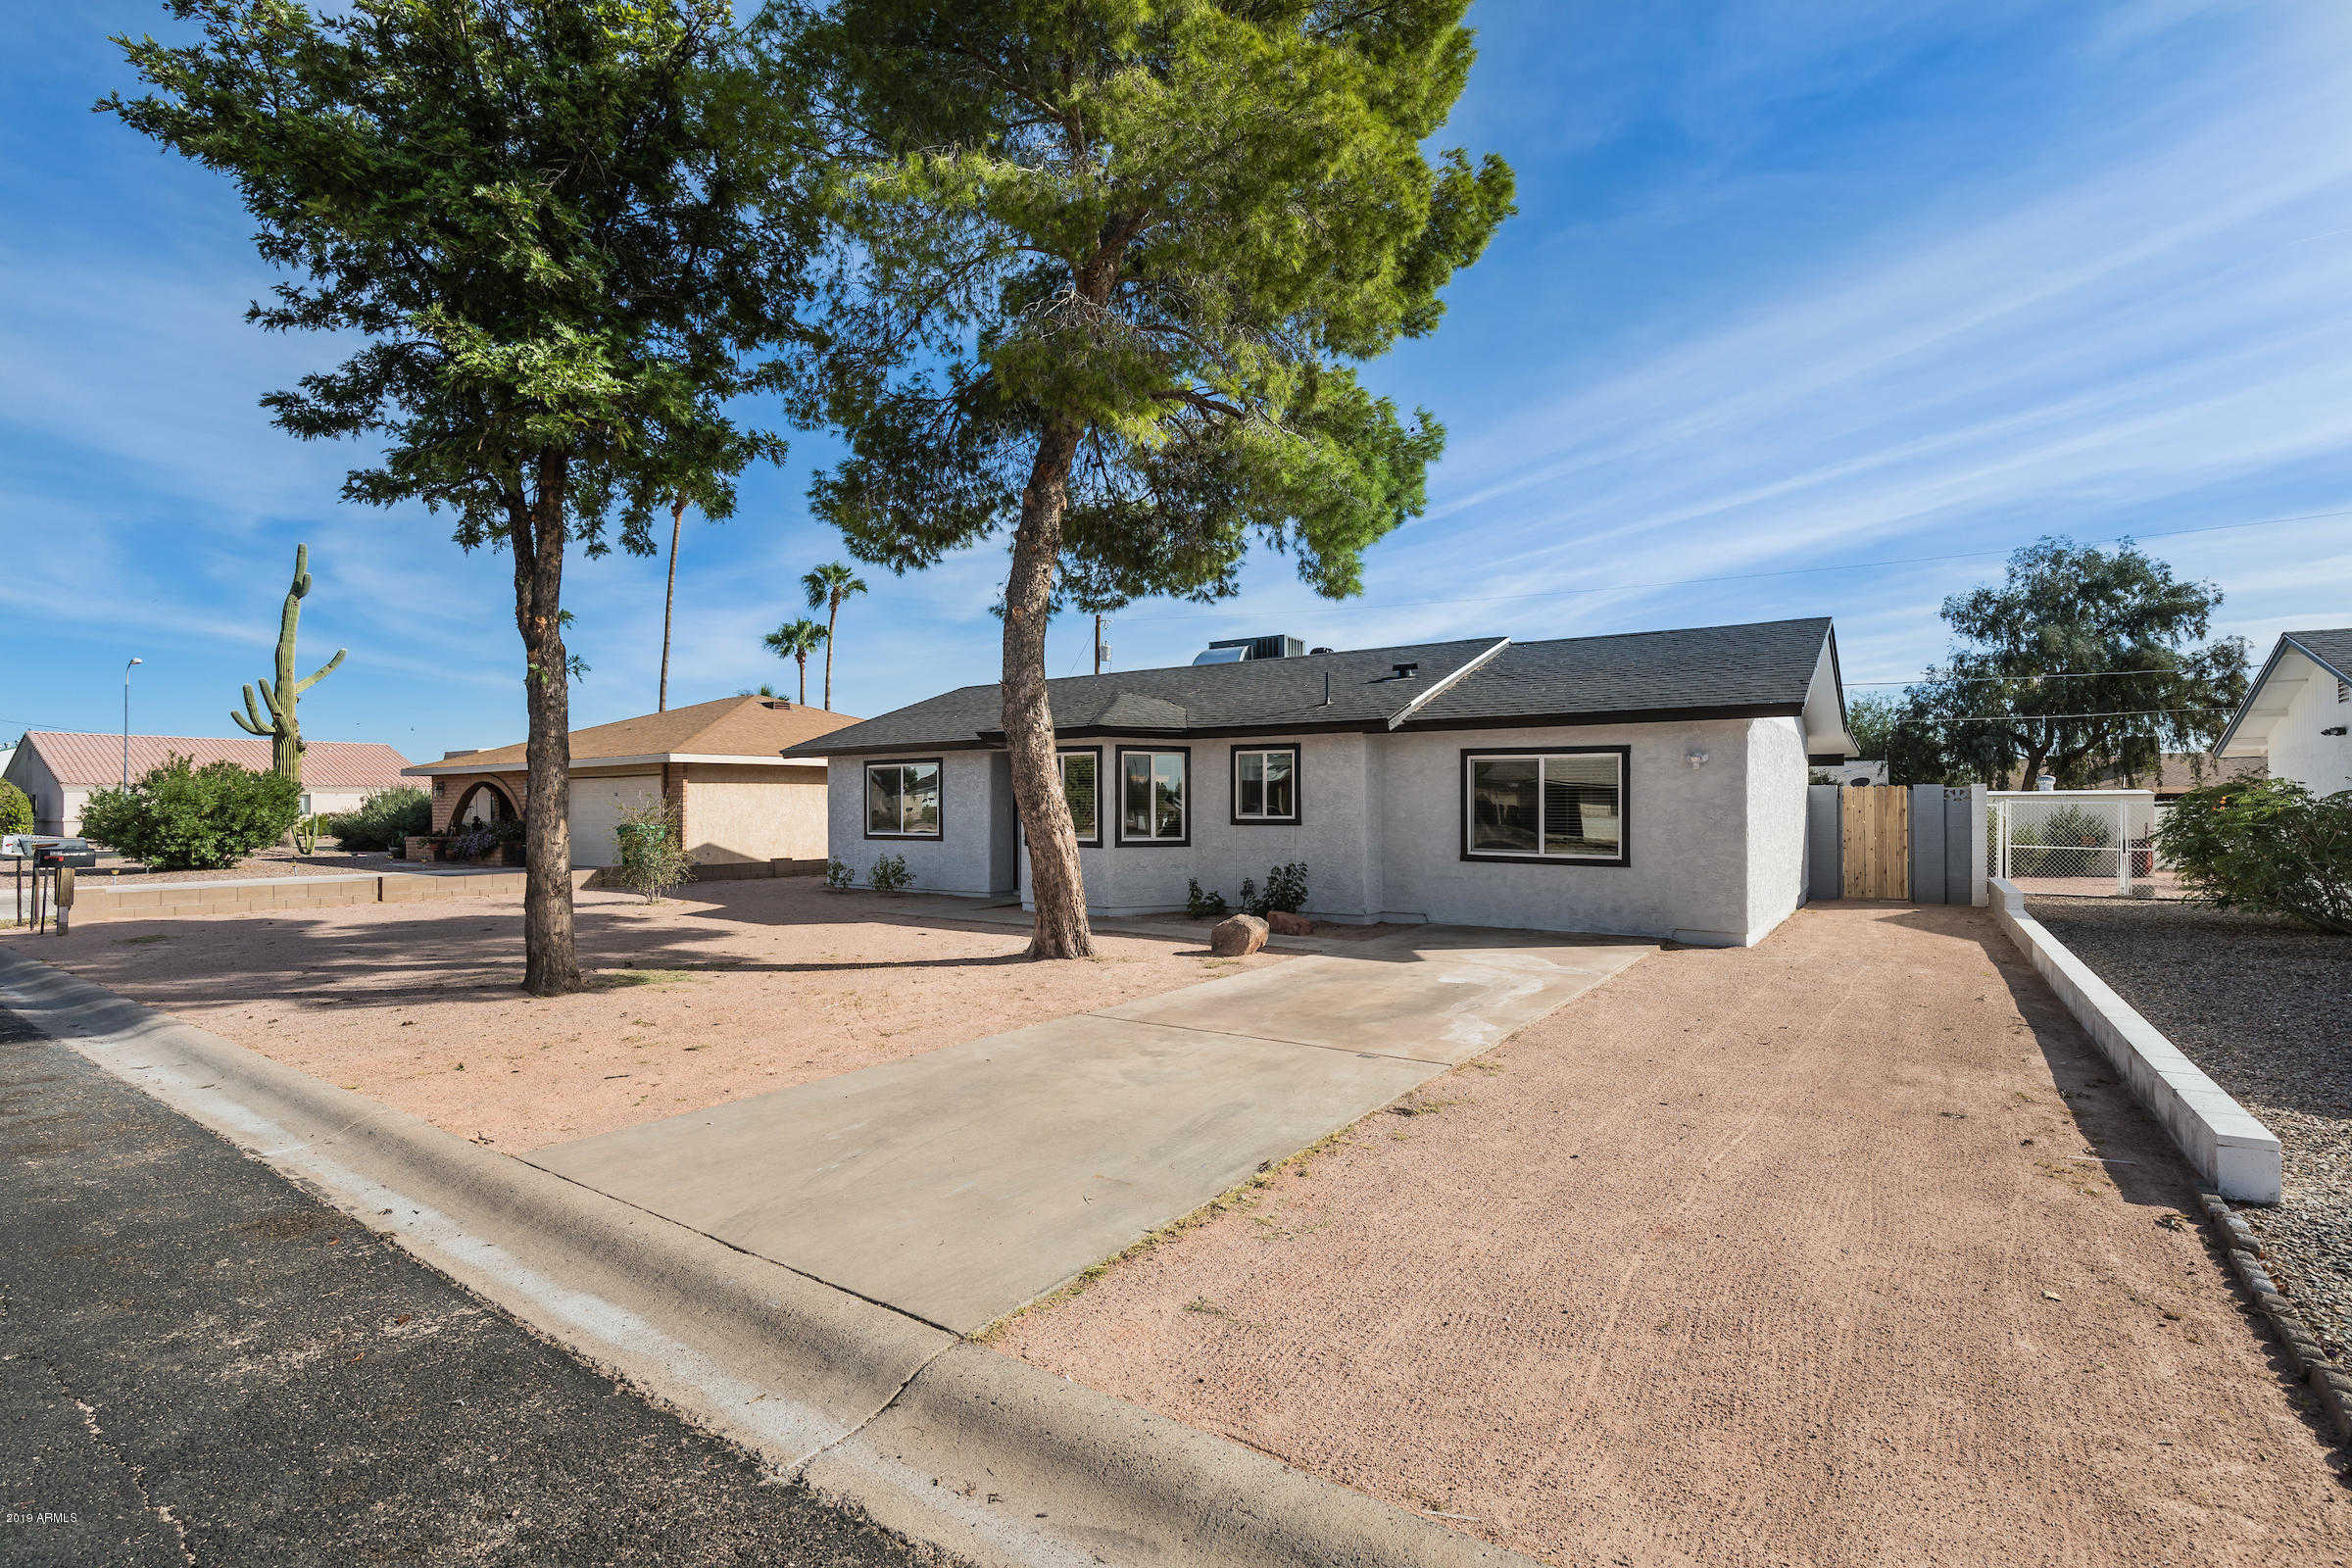 Homes for Sale in Pinal County - Marcella Lambert | Sonoran ... on